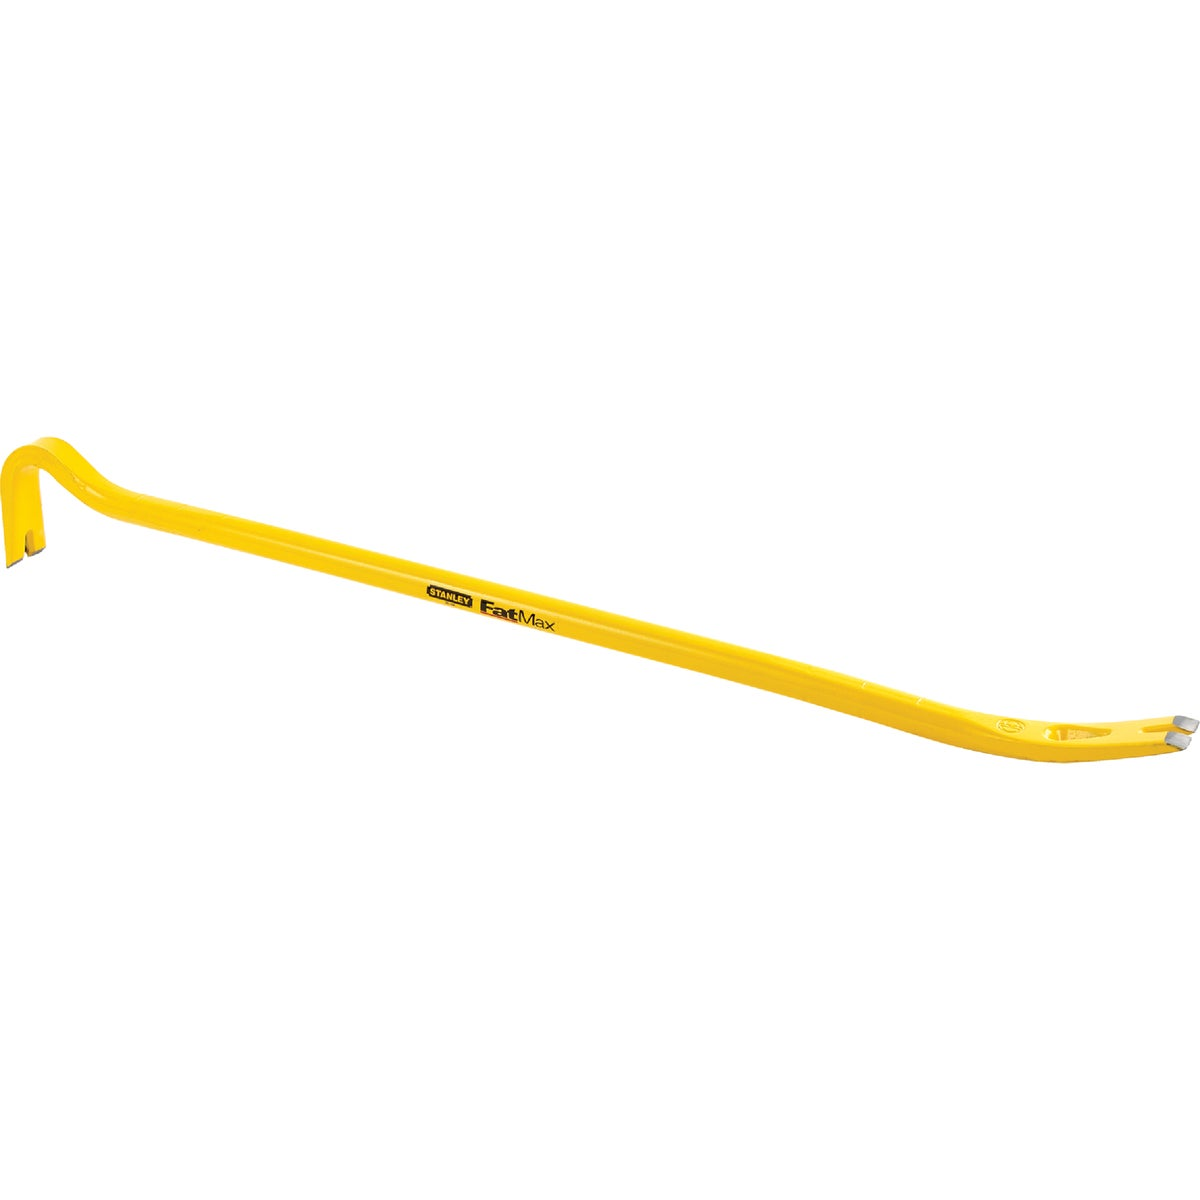 "36"" FATMAX BAR - 55-104 by Stanley Tools"